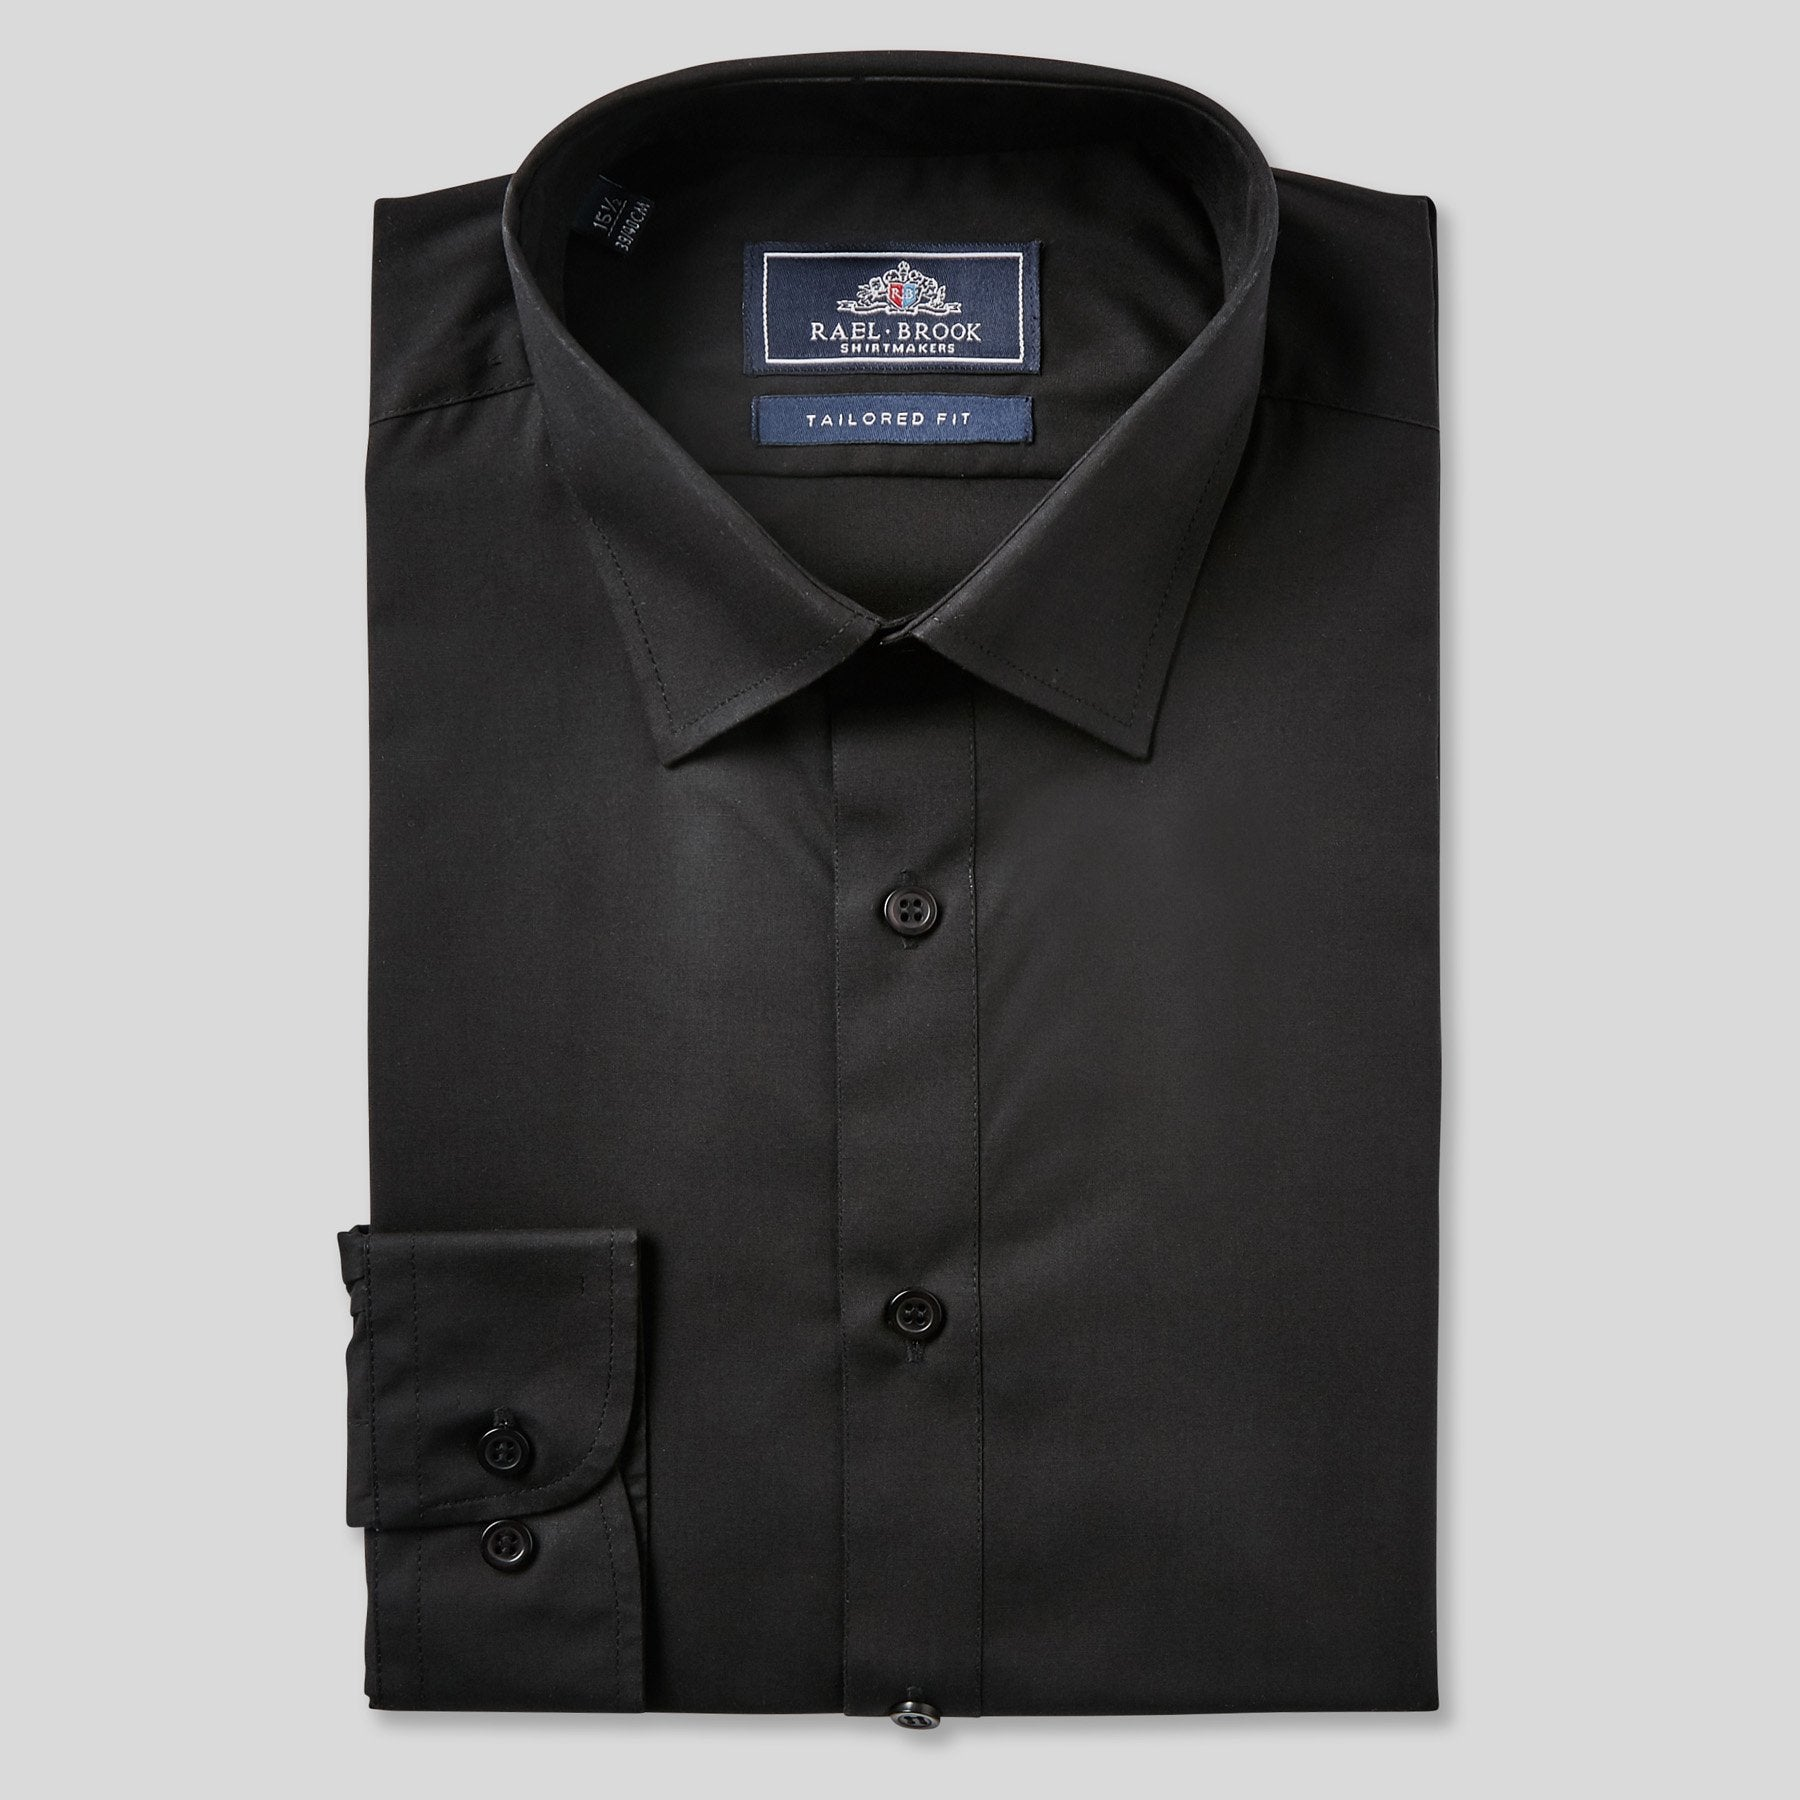 8432-Rael-Brook-Tailored-Fit-Black-Single-Cuff-Shirt-1